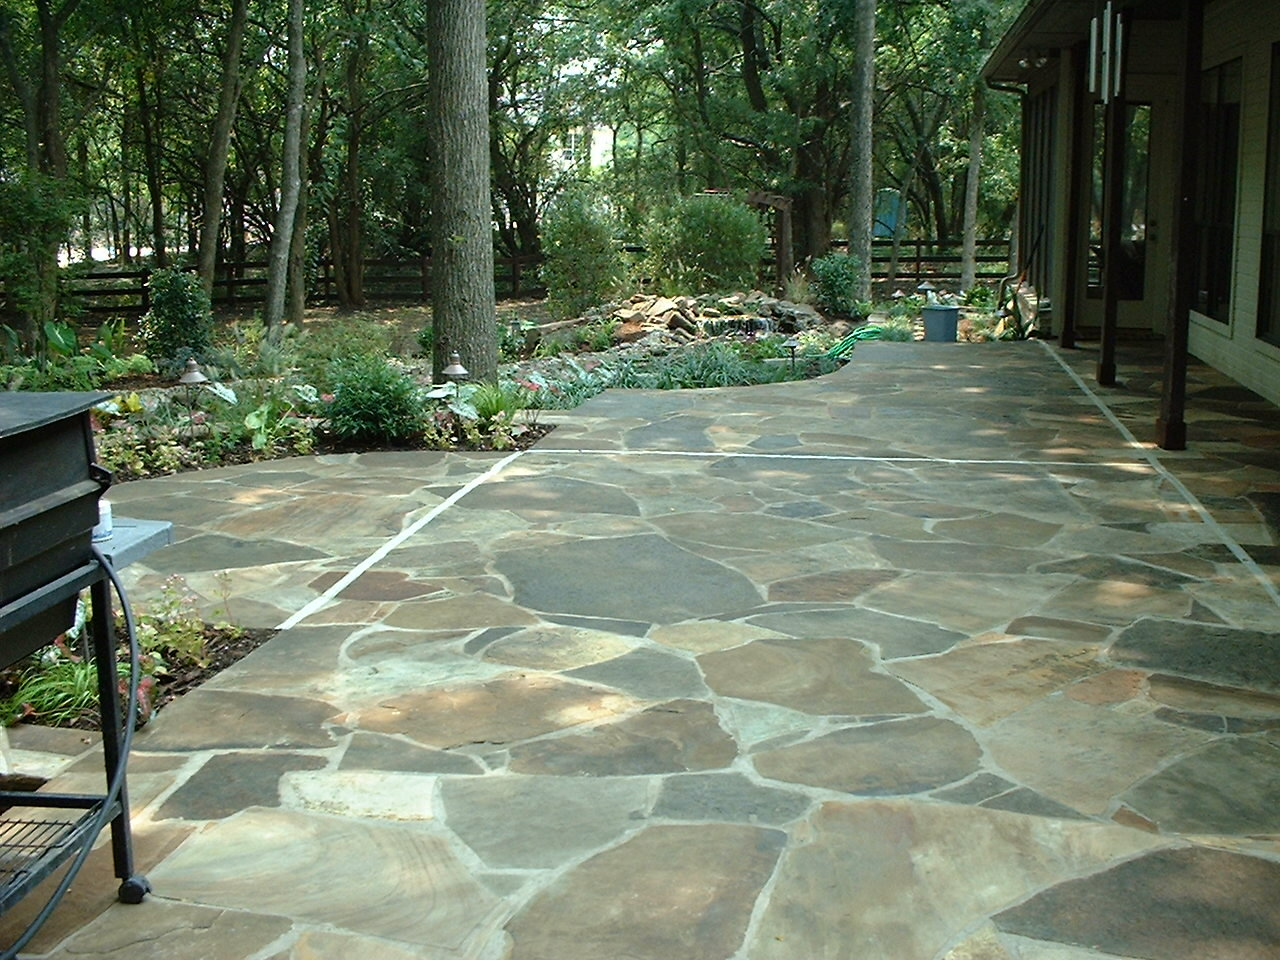 Laying a flagstone patio tips how to build a house having a patio built for you is expensive even if you can find a good professional to do it however if you can do it yourself and you dont have to pay solutioingenieria